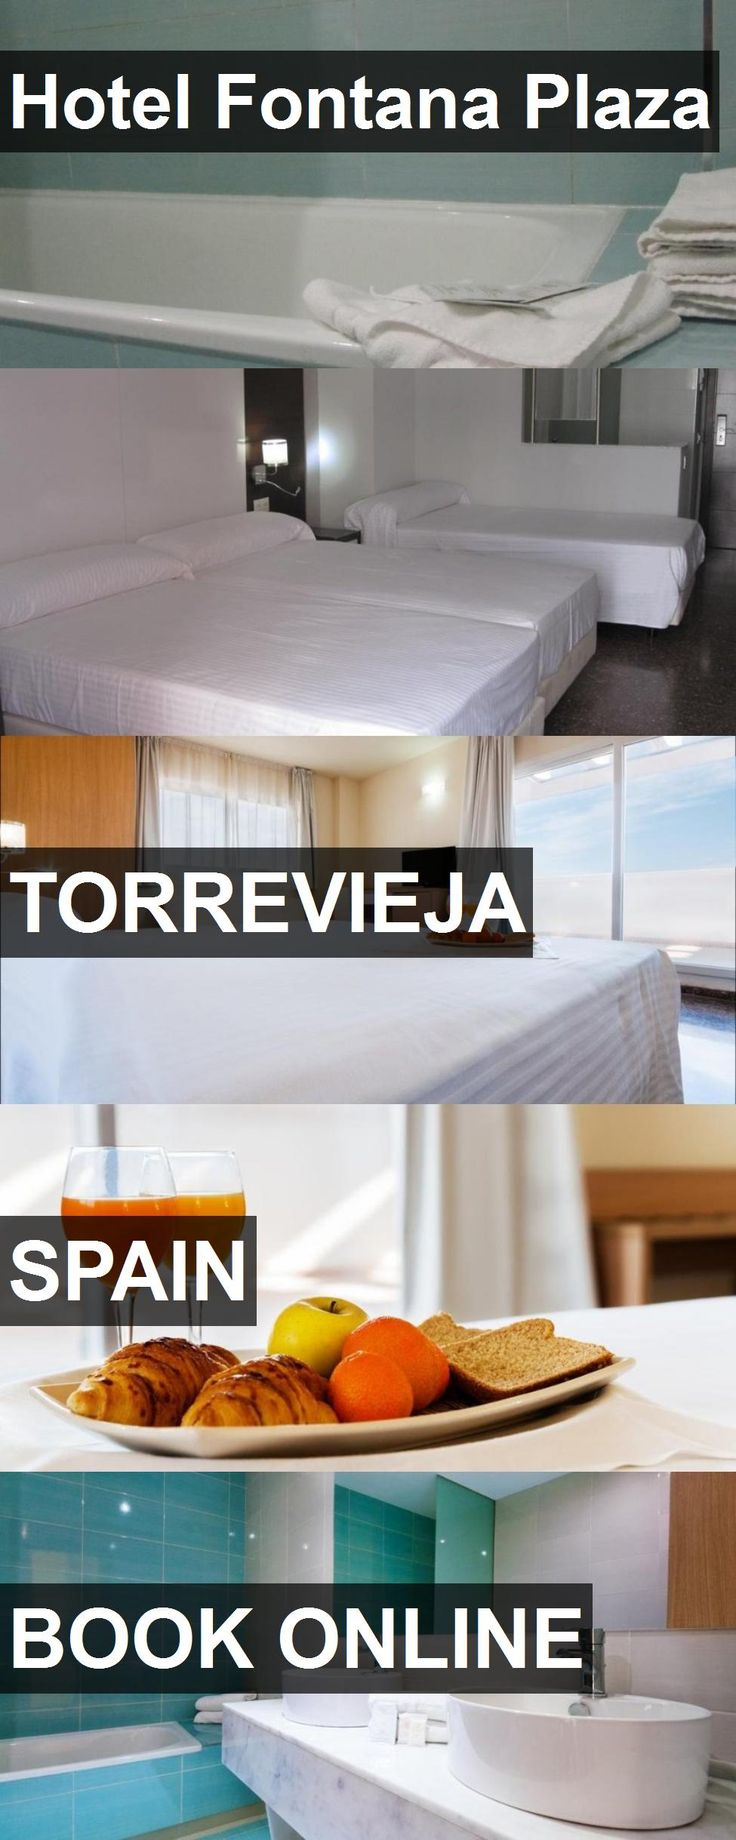 Hotel Fontana Plaza in Torrevieja, Spain. For more information, photos, reviews and best prices please follow the link. #Spain #Torrevieja #travel #vacation #hotel